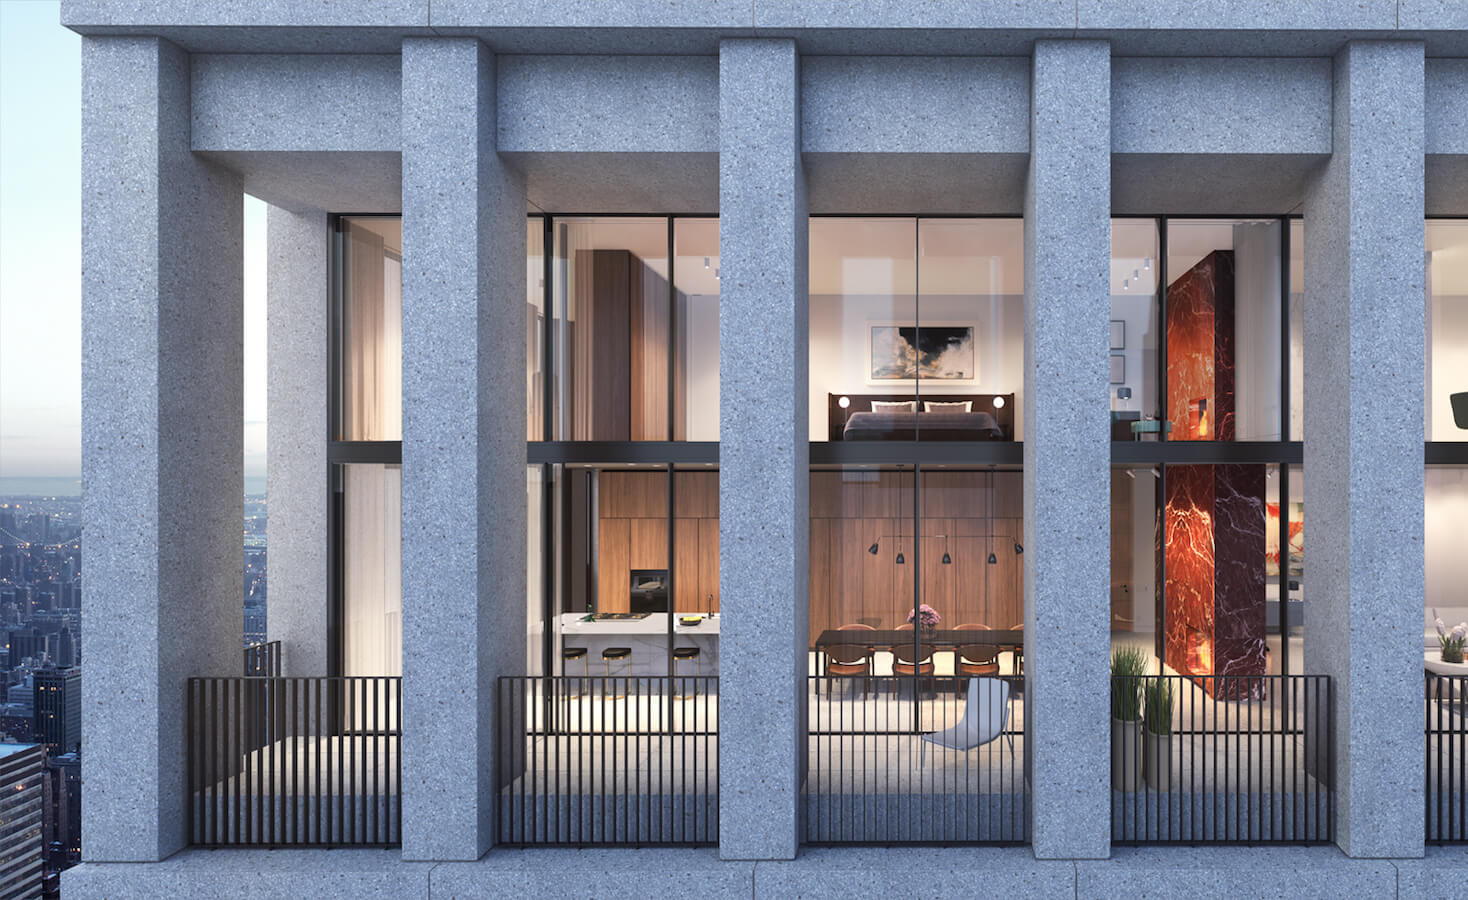 The Bryant. David Chipperfield